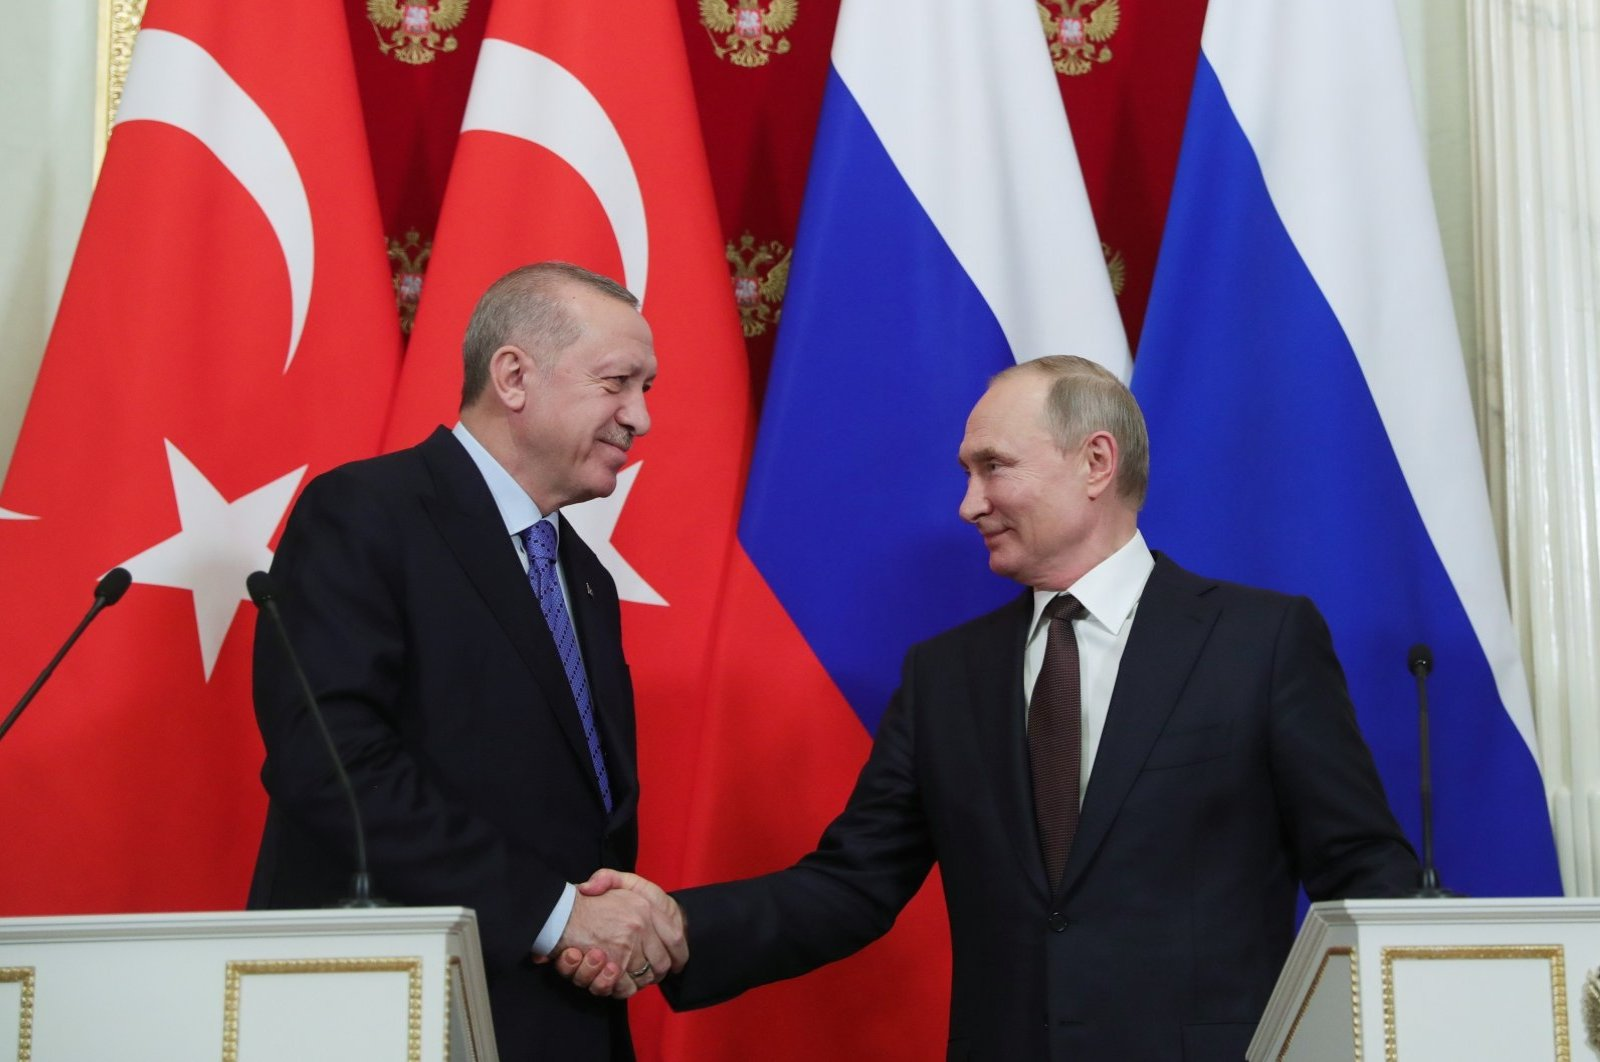 President Recep Tayyip Erdoğan shakes hand with his Russian counterpart Vladimir Putin following a press conference in Moscow, March 6, 2020. (AA Photo)